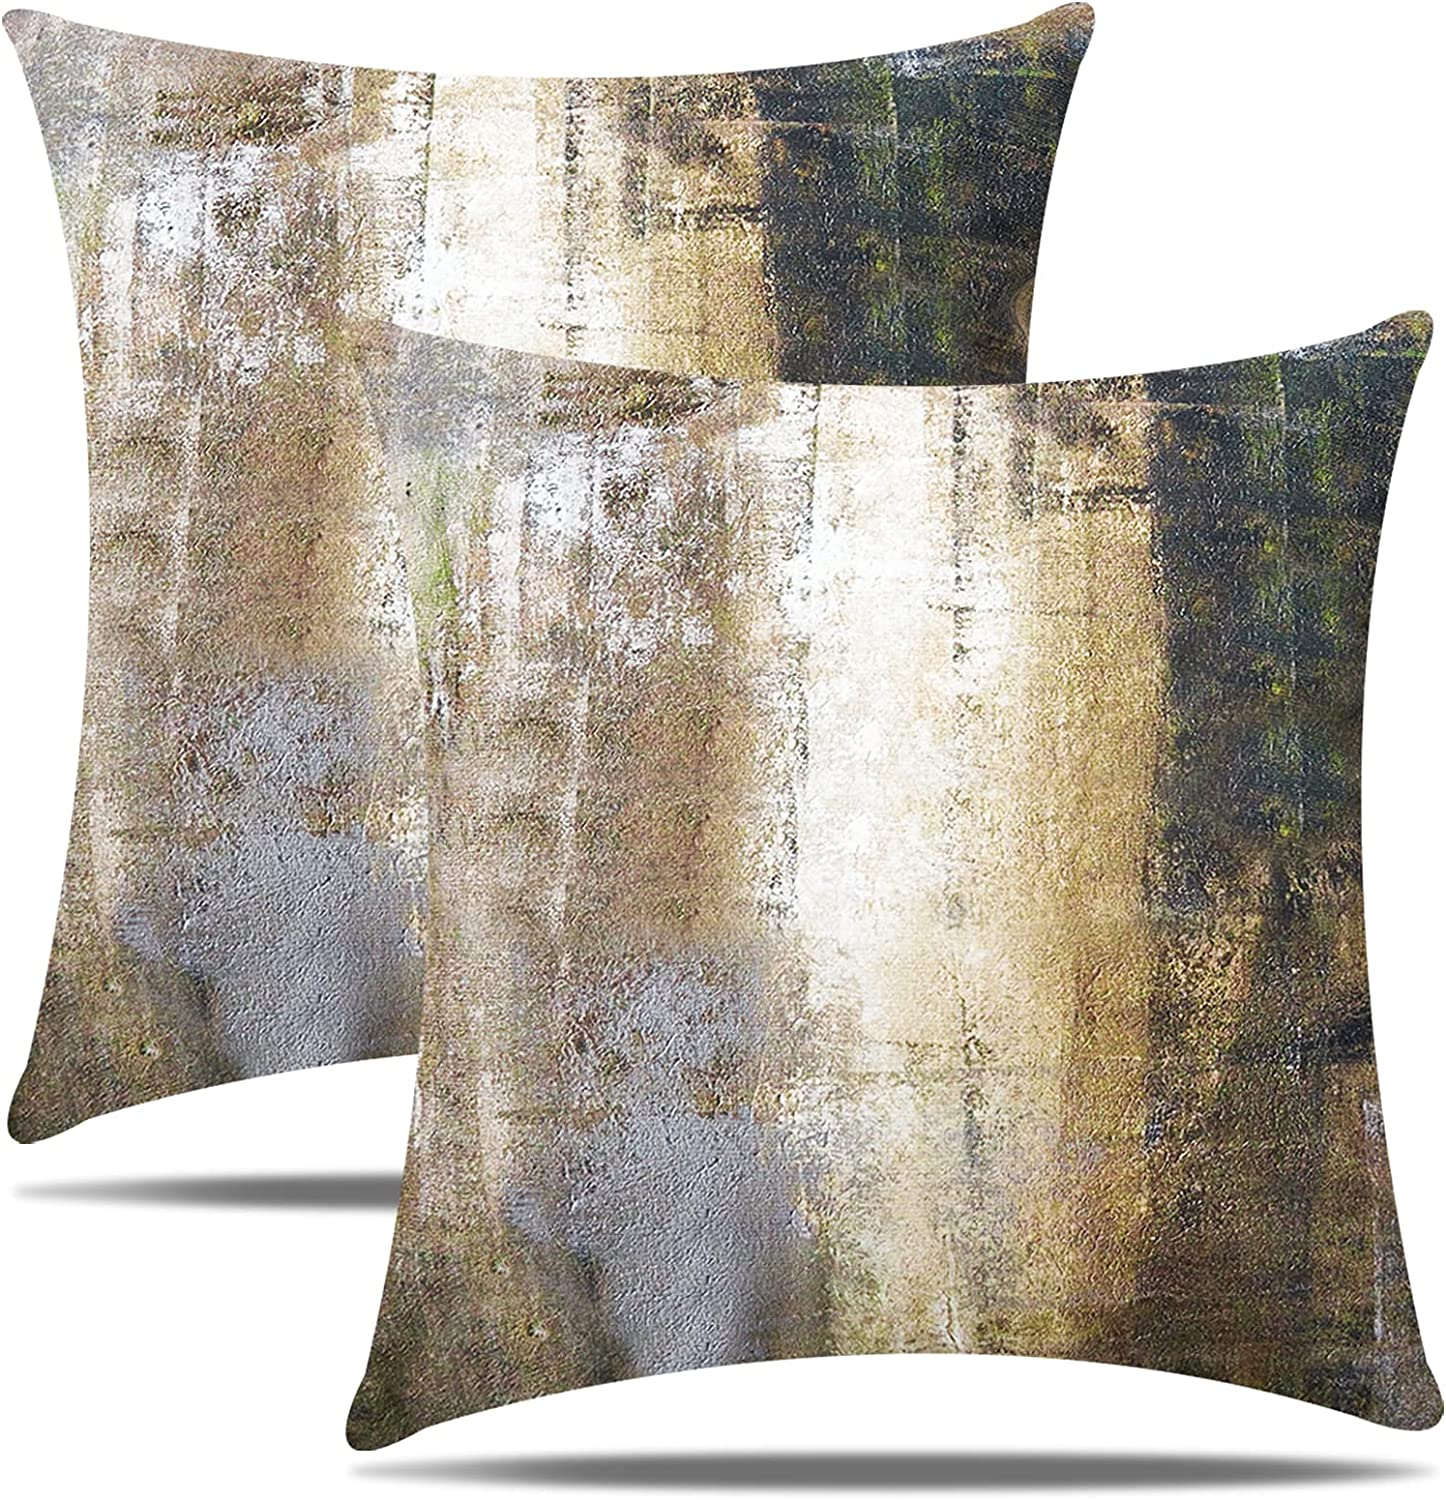 NEERYO Pack of 2 Soft Velvet Artwork Cushion Covers Decorative Abstract Art Throw Pillow Covers 18 X 18 Inches 45 X 45 cm for Couch Bedroom Farmhouse Decor Brown